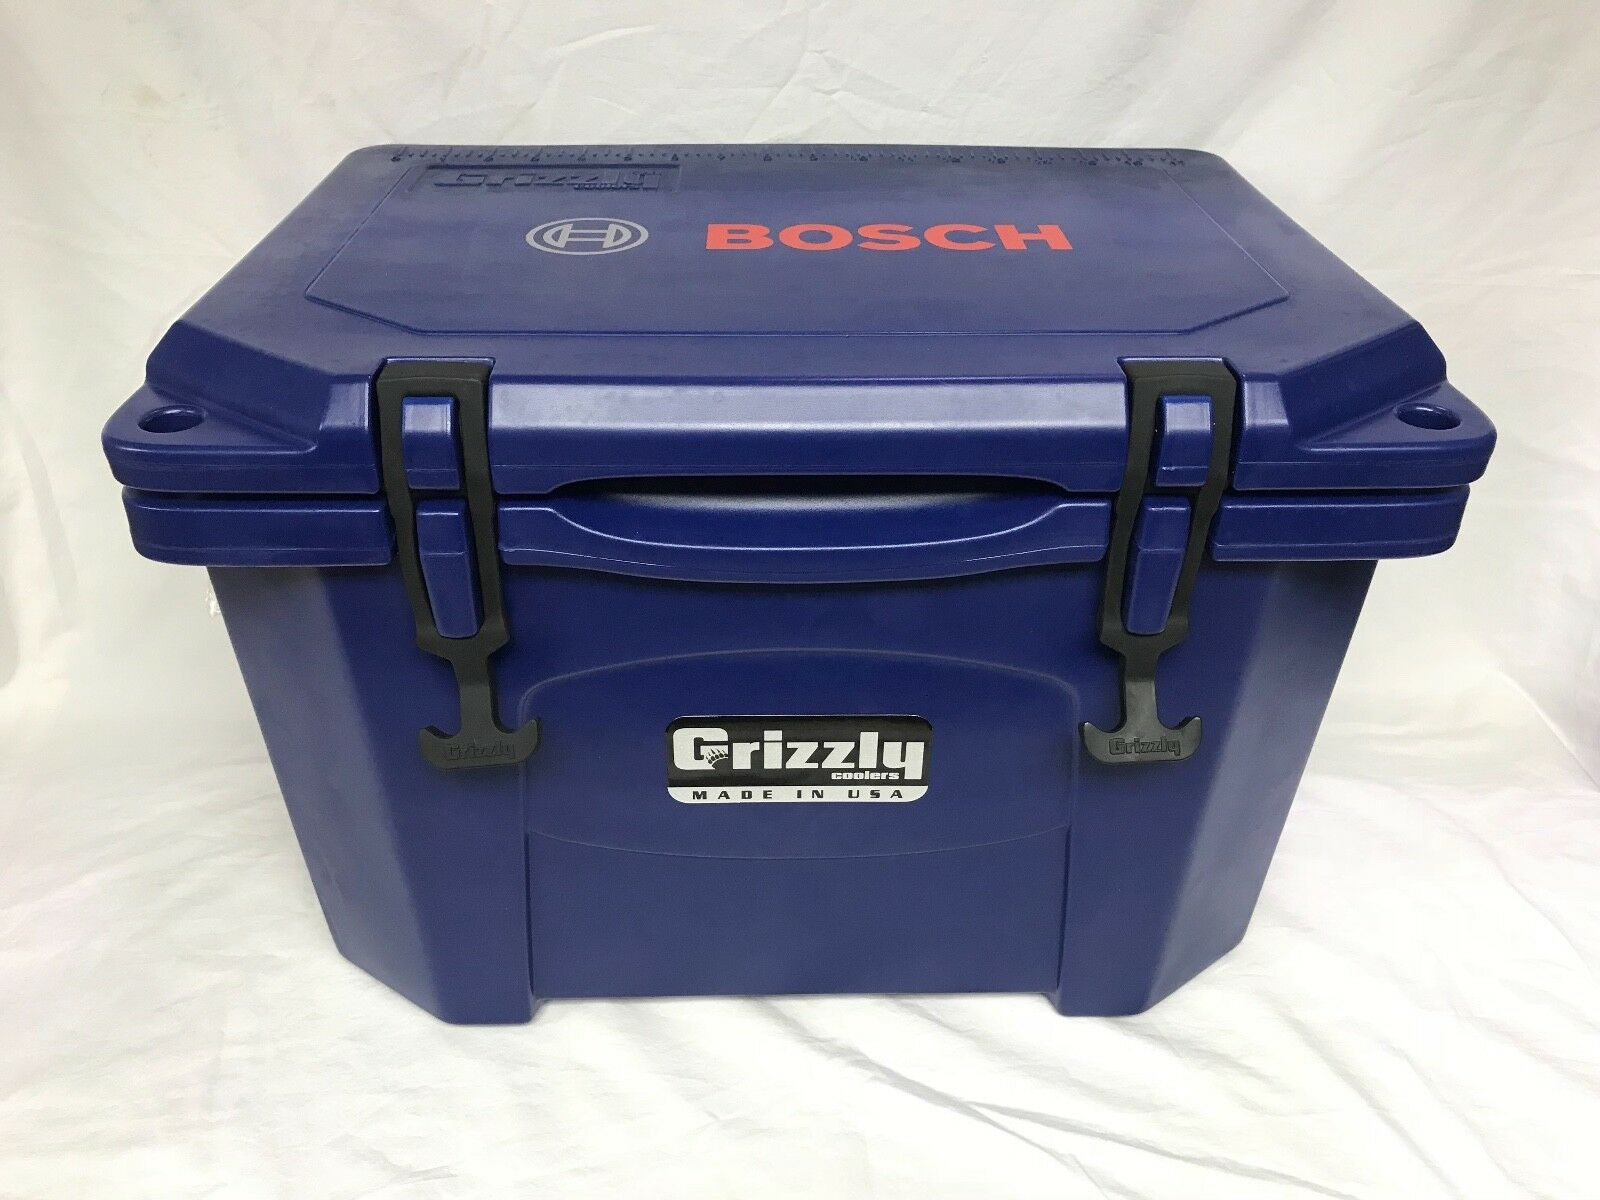 Grizzly Bosch Cooler - 20 Qt Heavy Duty Ice Retention Blau - Camping Job Site